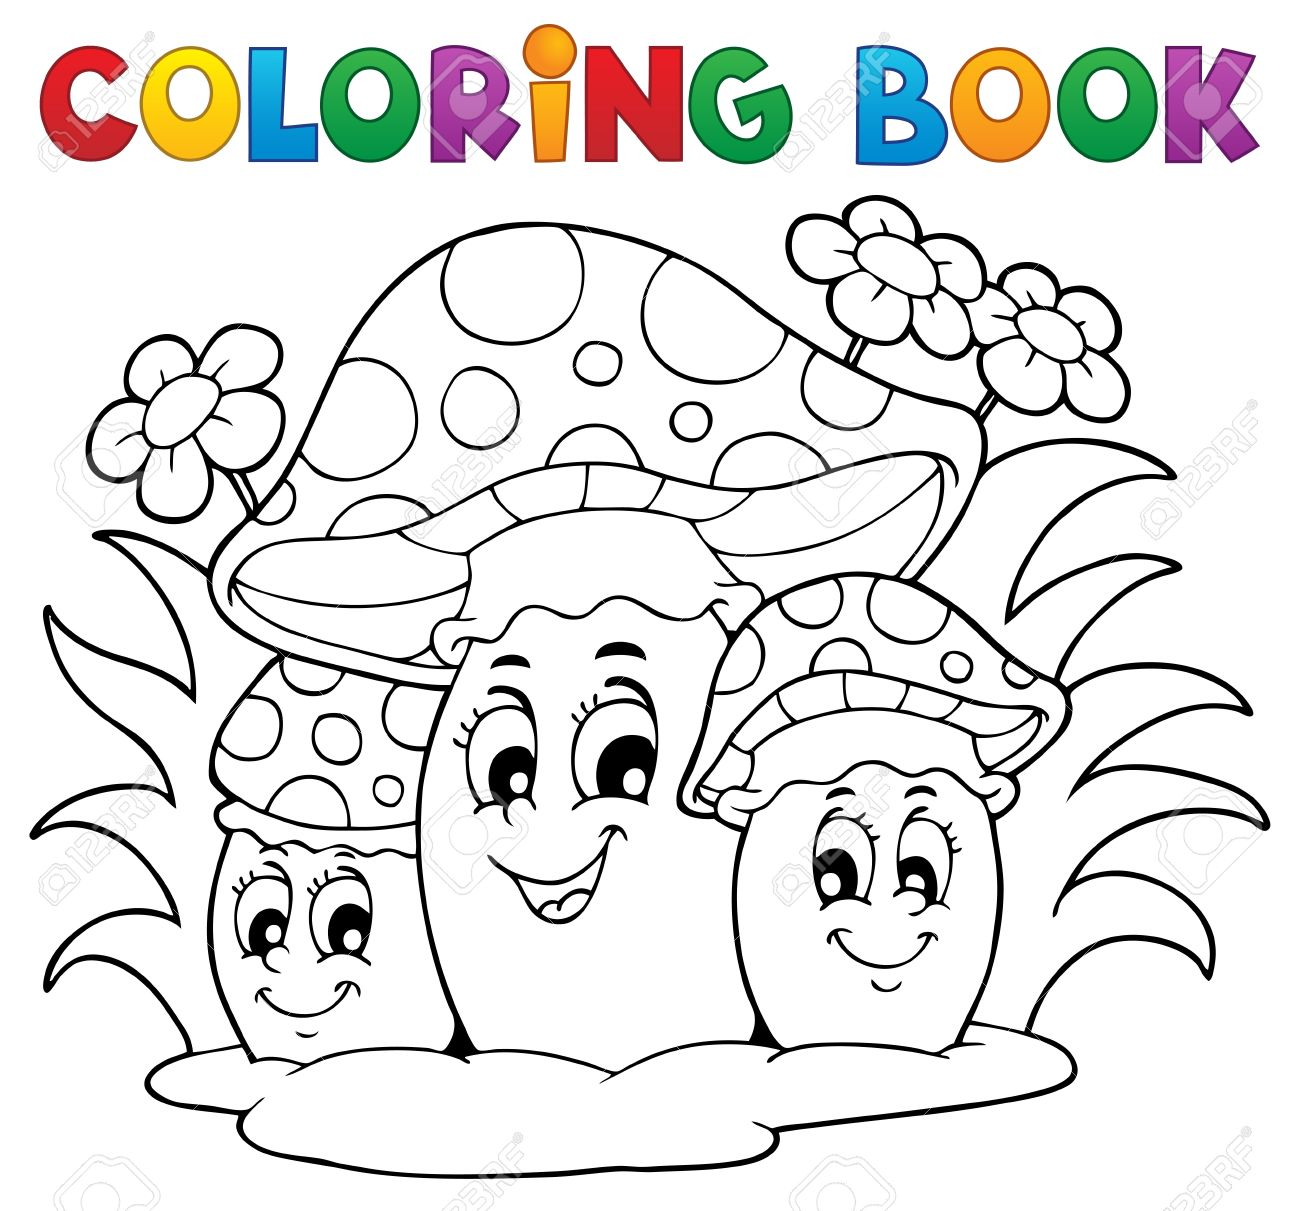 Coloring Pages Vector - Coloring book mushroom theme 2 vector illustration stock vector 18088563